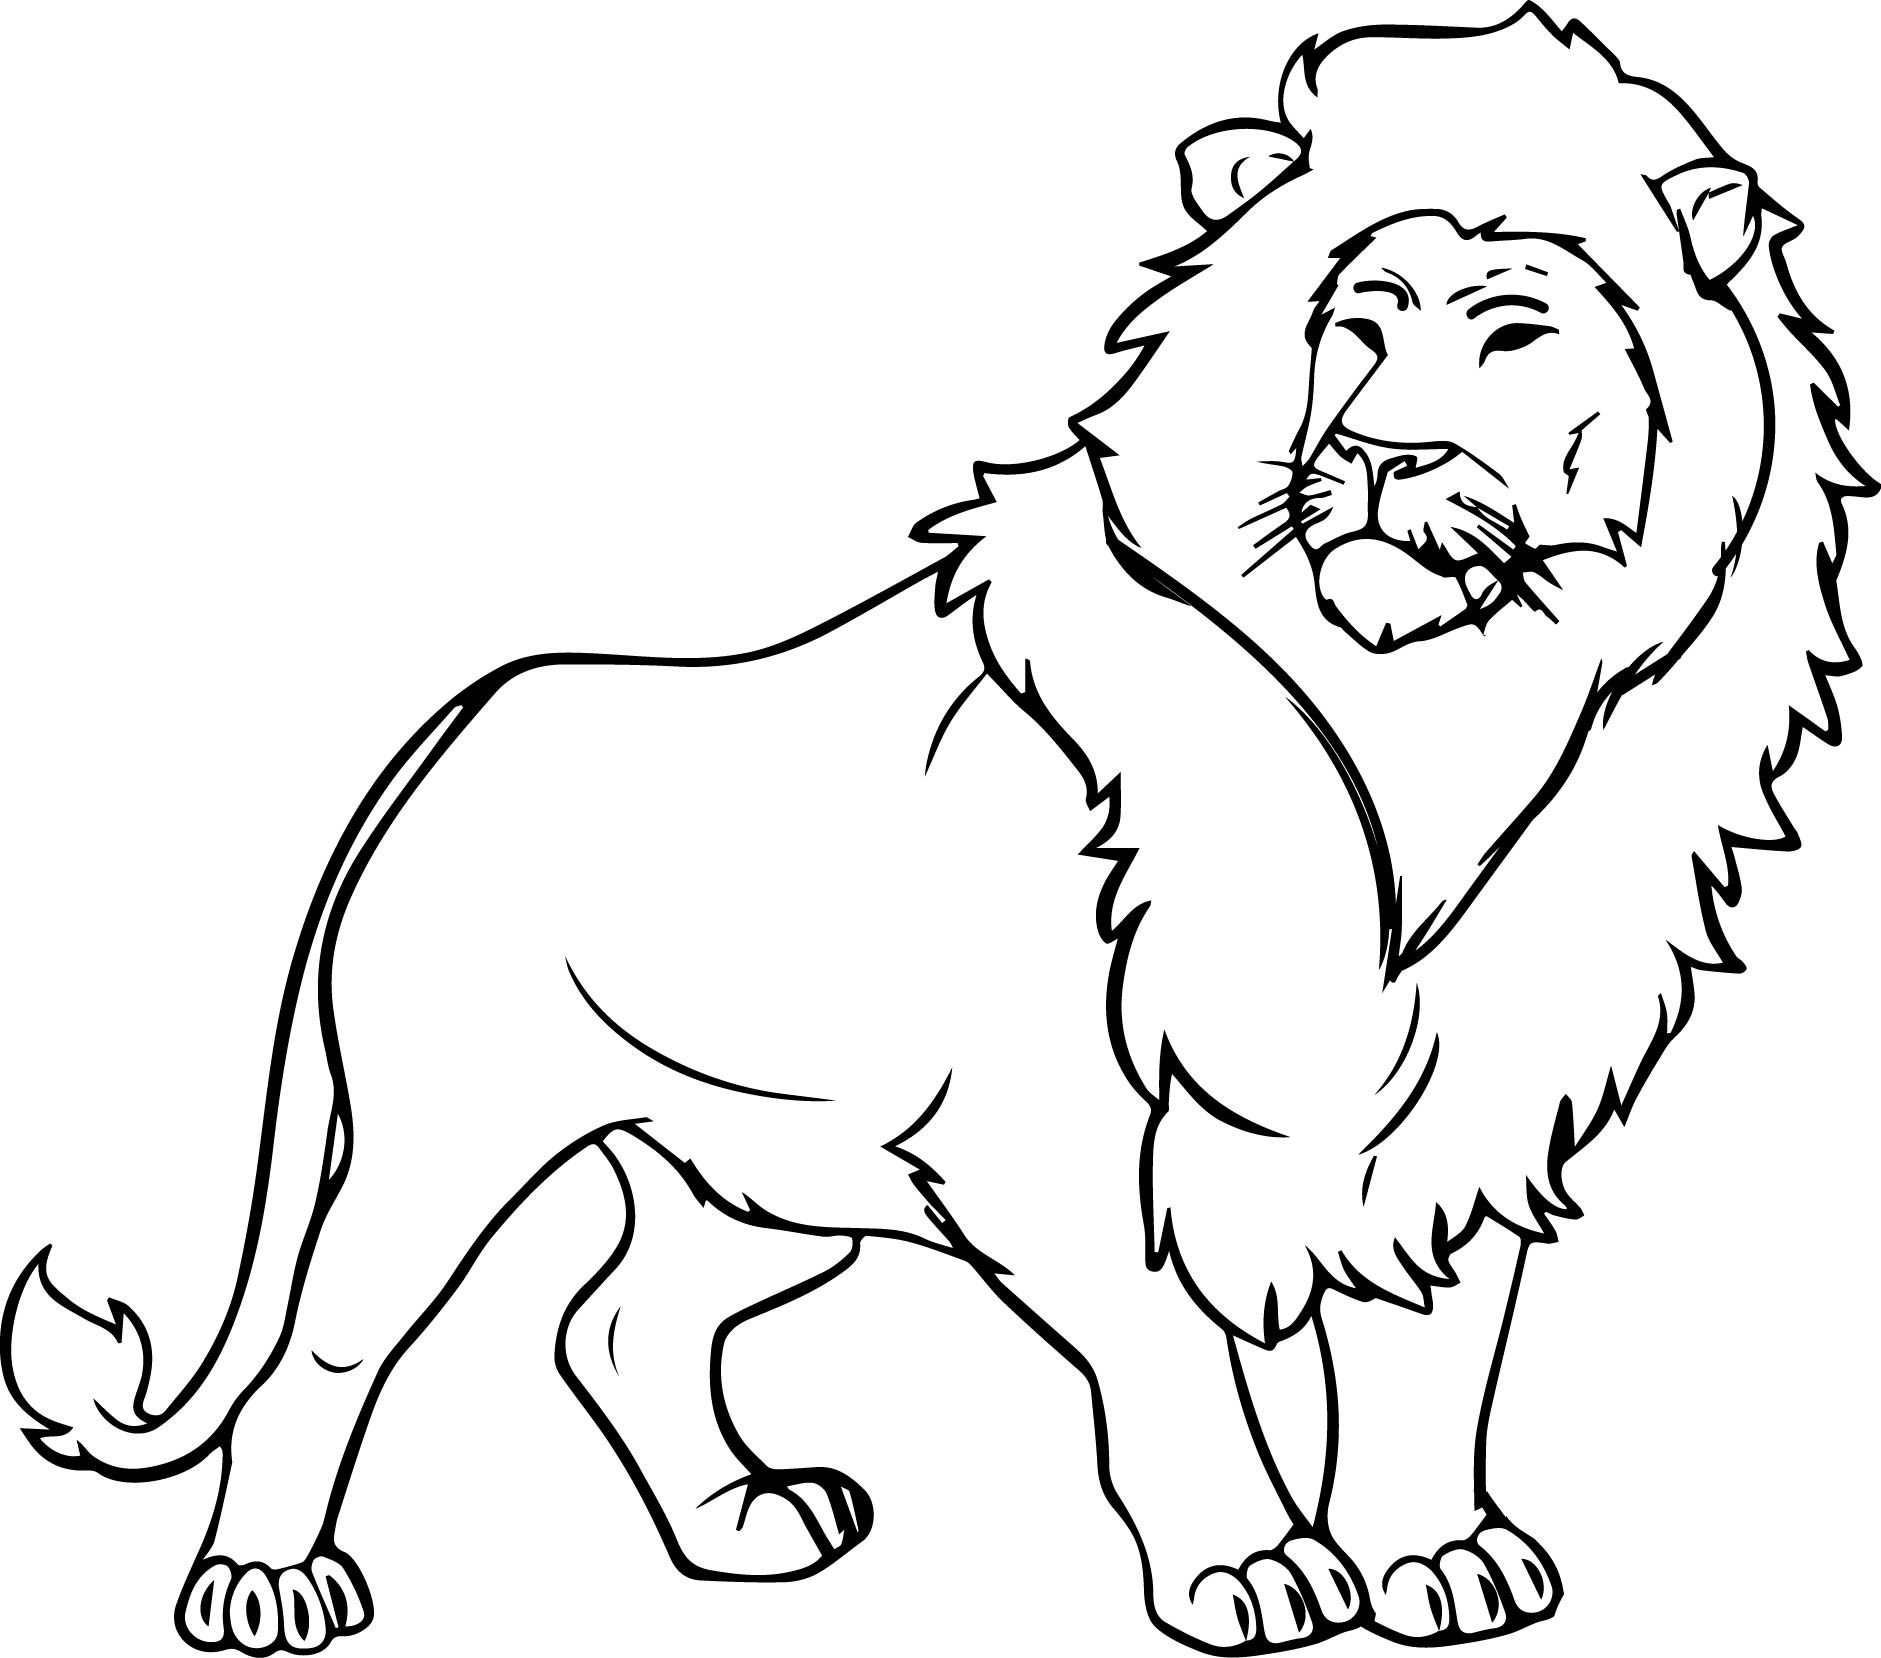 coloring page of a lion lion color drawing at getdrawings free download lion page coloring a of